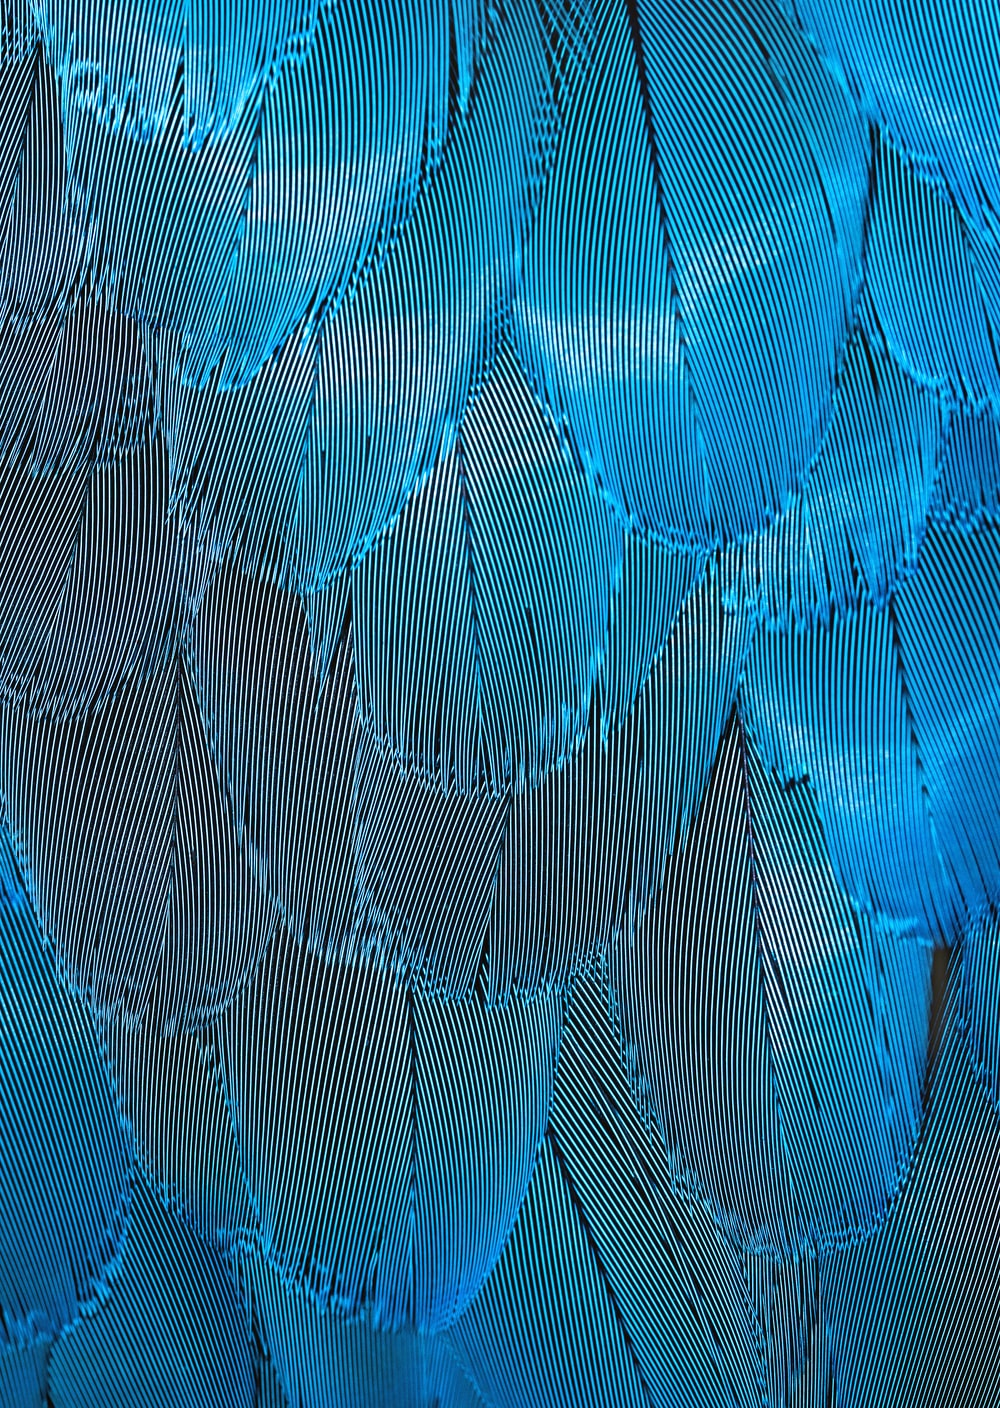 blue and brown feathers